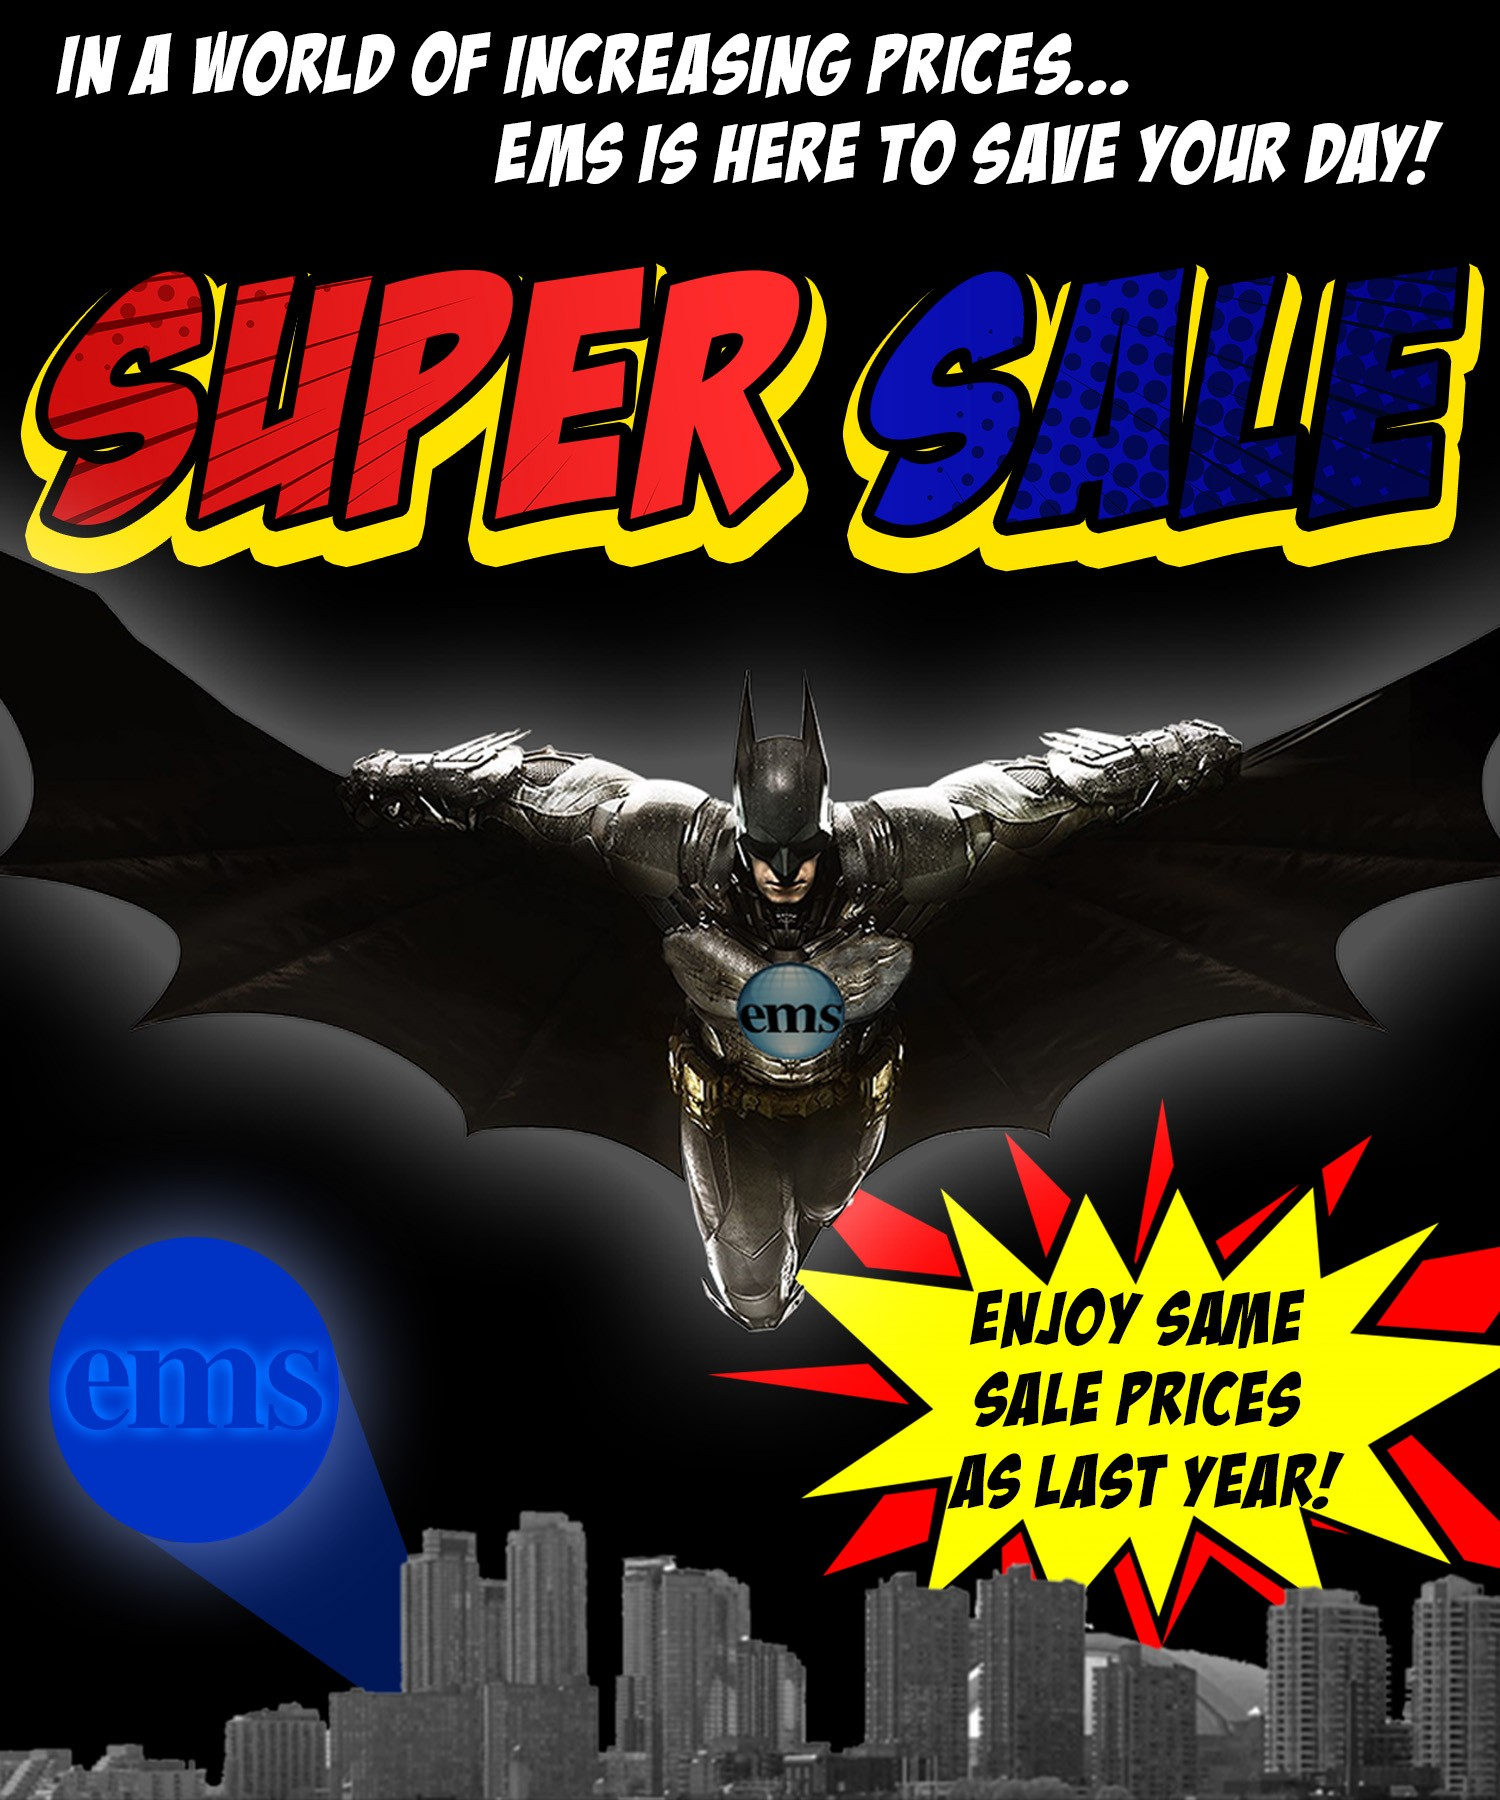 ​In a world of increasing prices.... EMS is here to save your day! Enjoy same sale prices as last year!